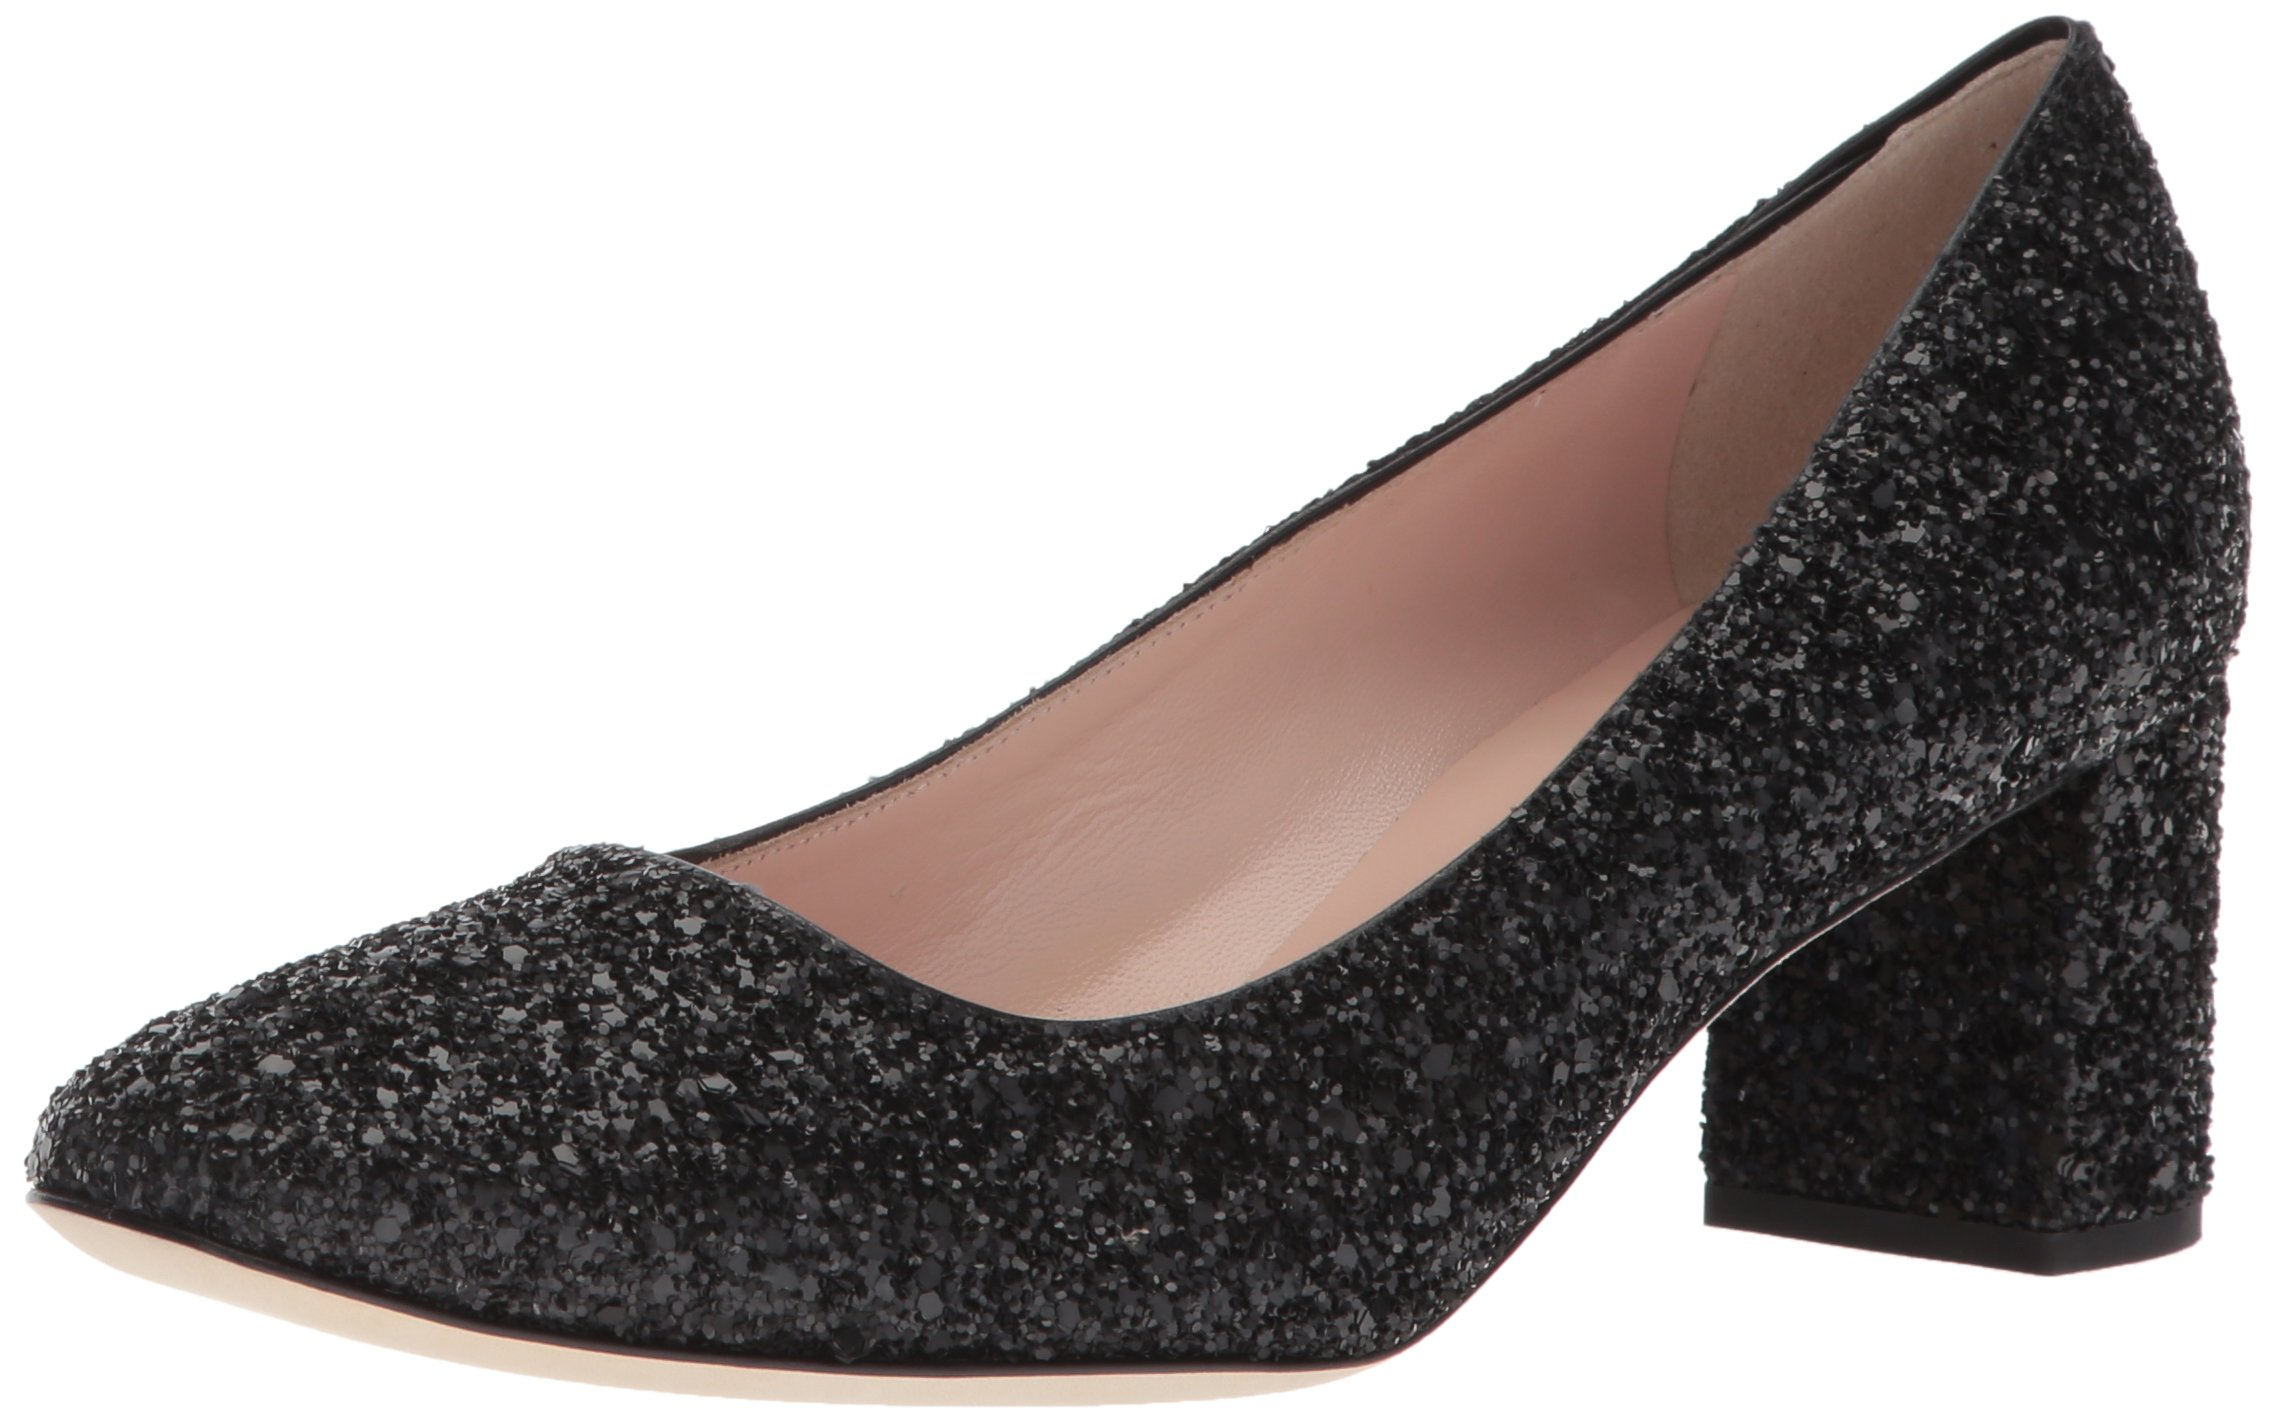 kate spade new york Women's Dolores, Black, 9.5 M US by Kate Spade New York